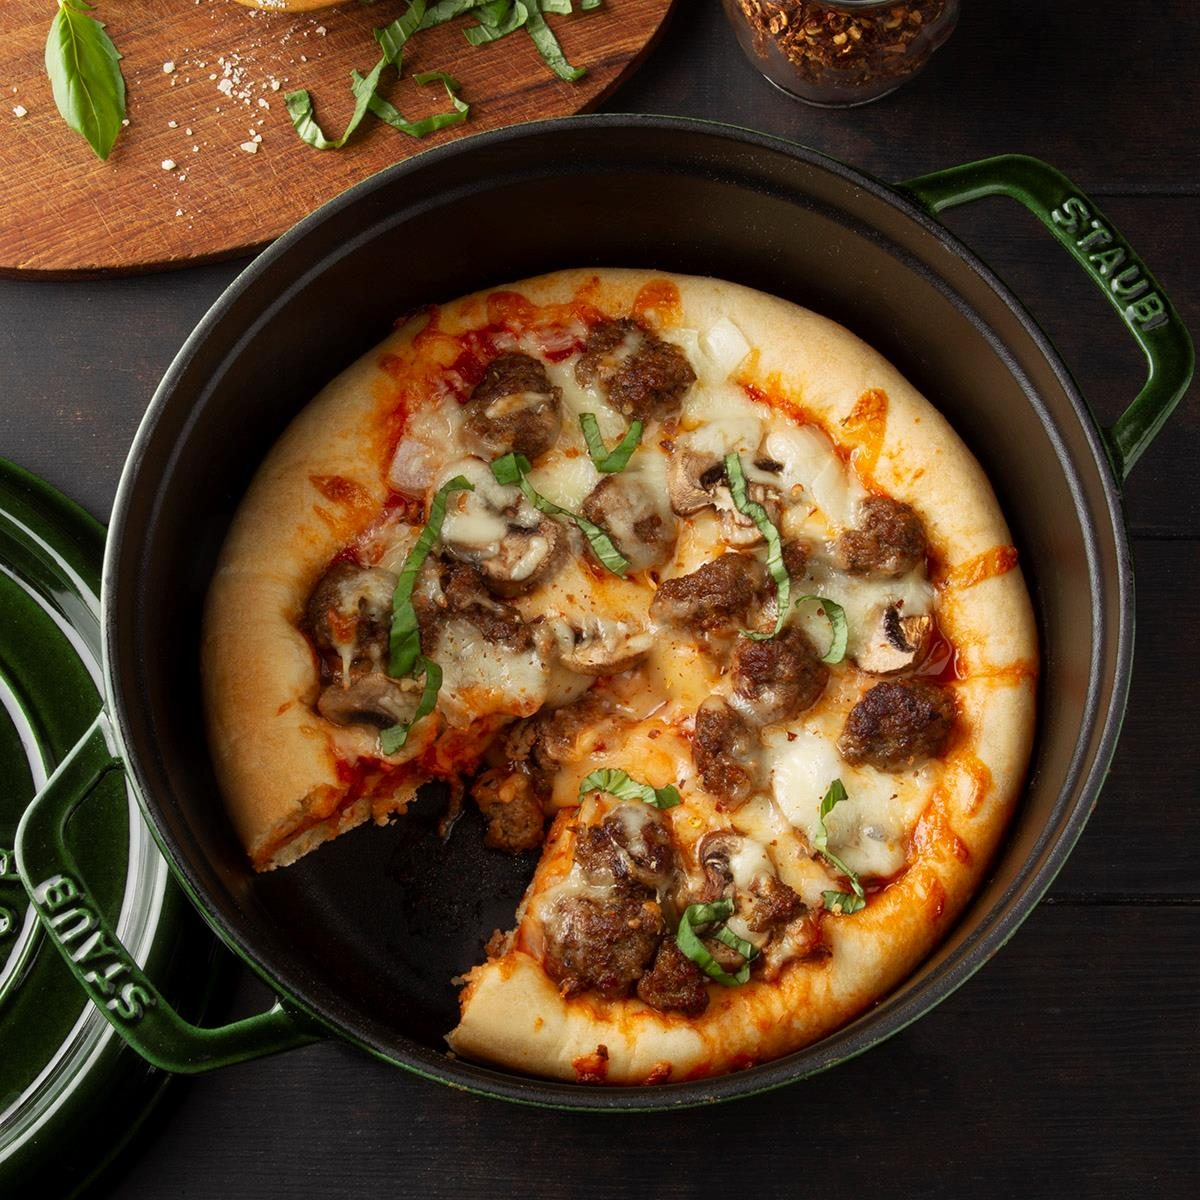 Day 16: Dutch Oven Pizza